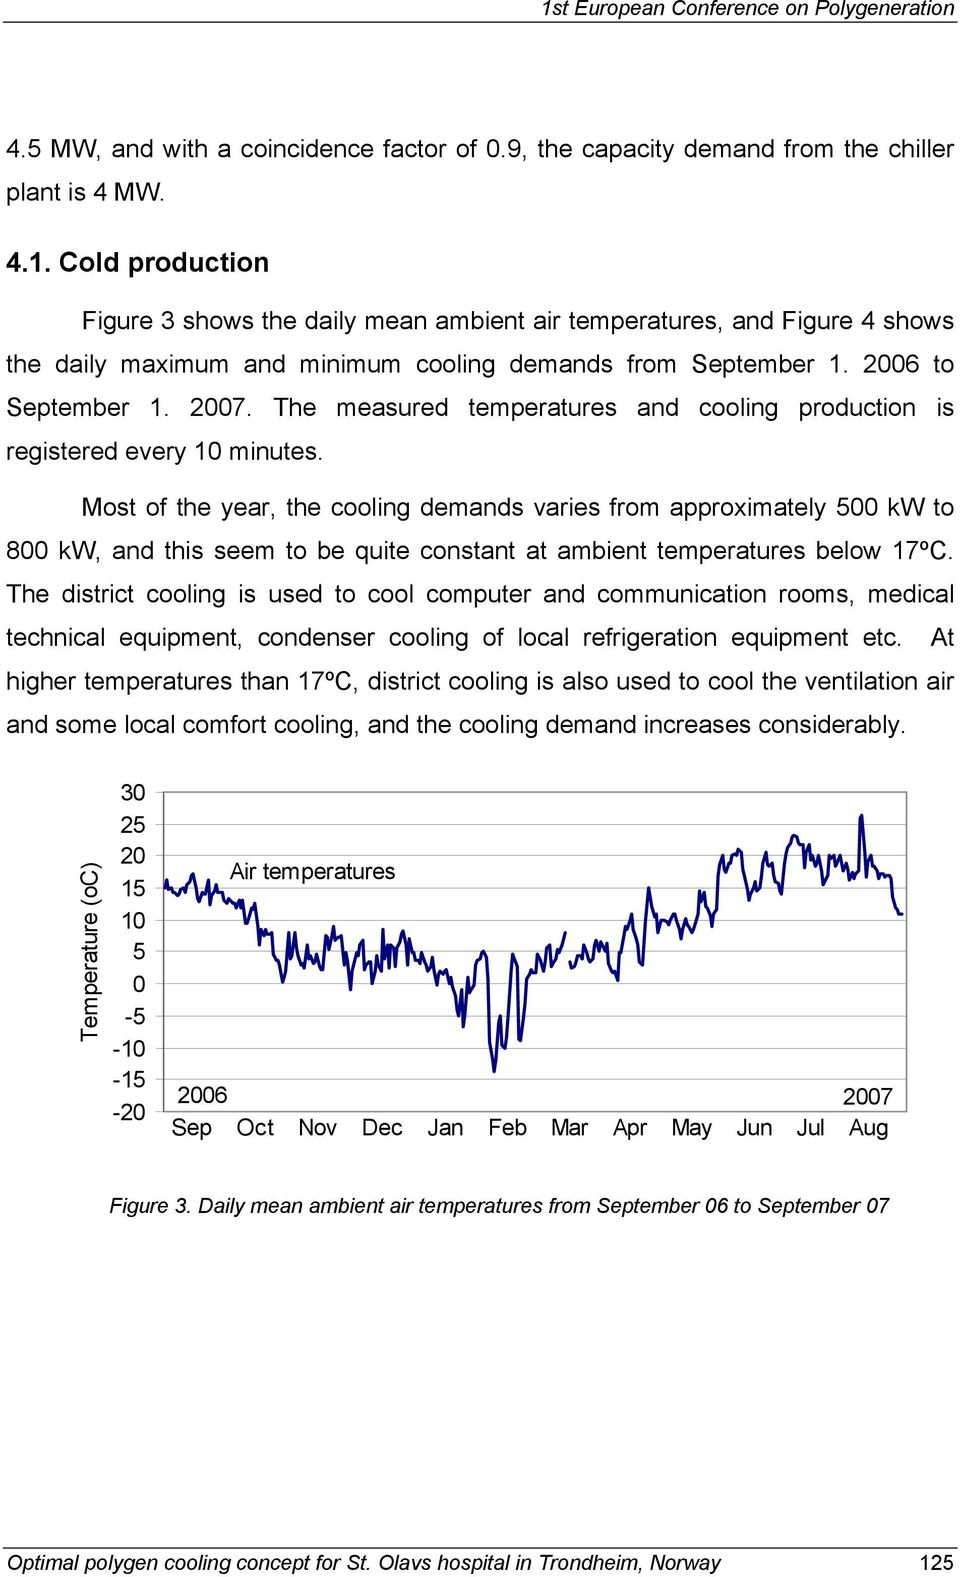 Most of the year, the cooling demands varies from approximately 500 kw to 800 kw, and this seem to be quite constant at ambient temperatures below 17ºC.